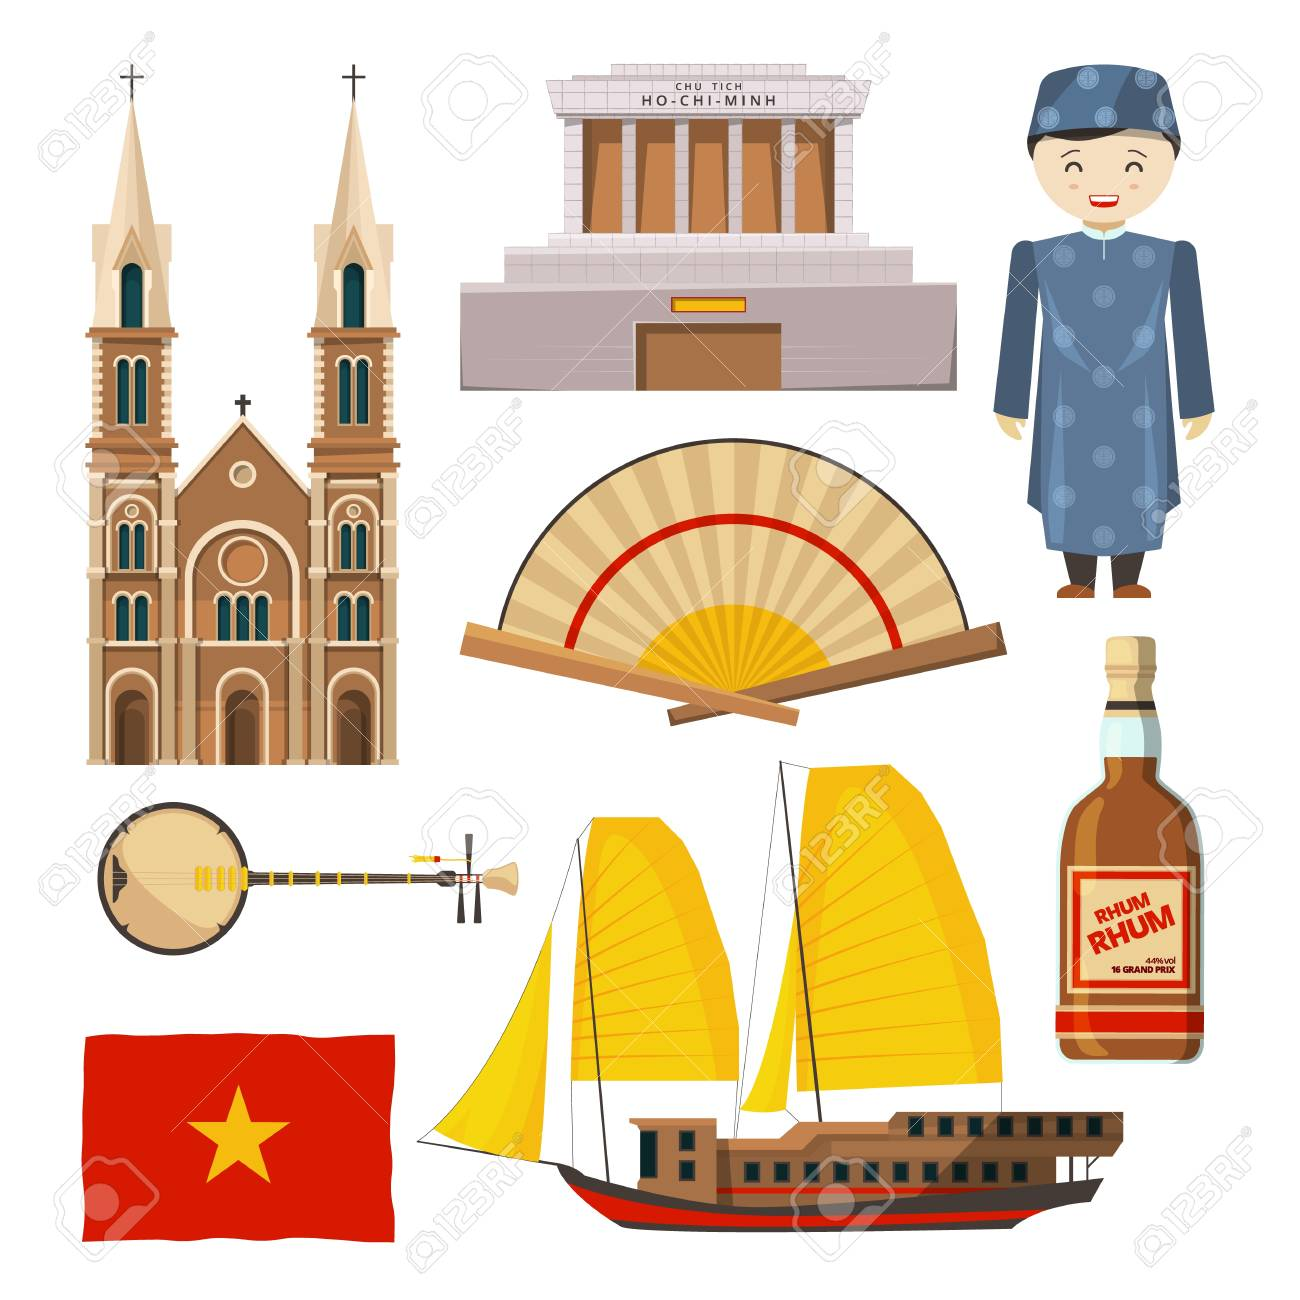 Different pictures of Vietnam symbols isolated on white background Vector illustration. - 98010318